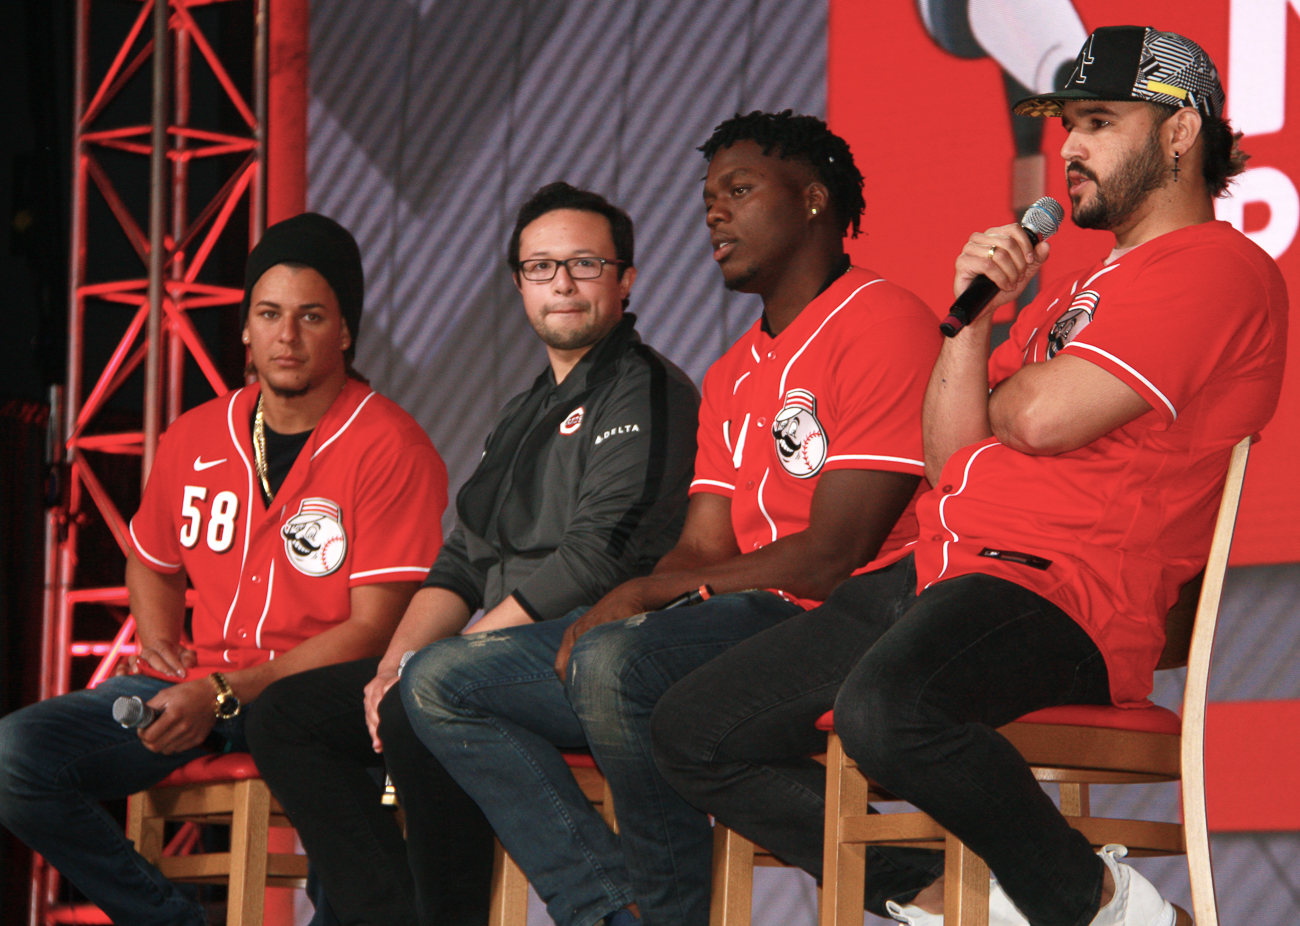 Luis Castillo (pitcher),{ }Jorge Merlos (Reds Youth Academy Outreach Coordinator),{ }Aristides Aquino (right fielder), and Eugenio Suarez (third baseman) / Image: Richard Sanders // Published: 12.8.19